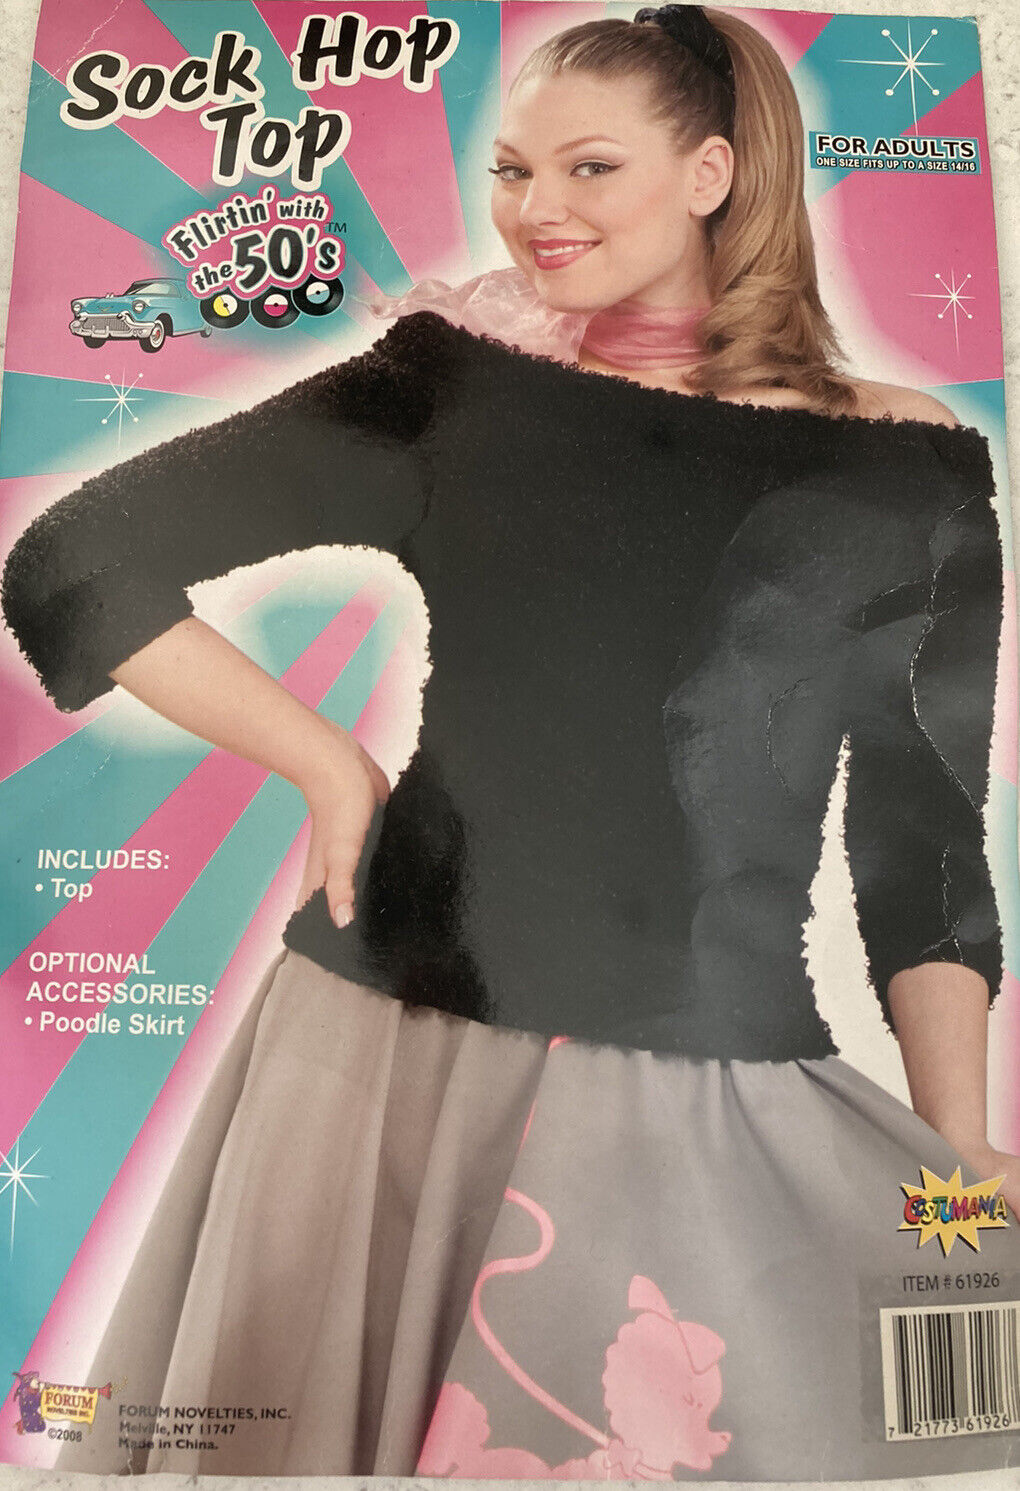 50's Black Sock Hop Top for Adult - One Size up to 14/16 - FREE POSTAGE